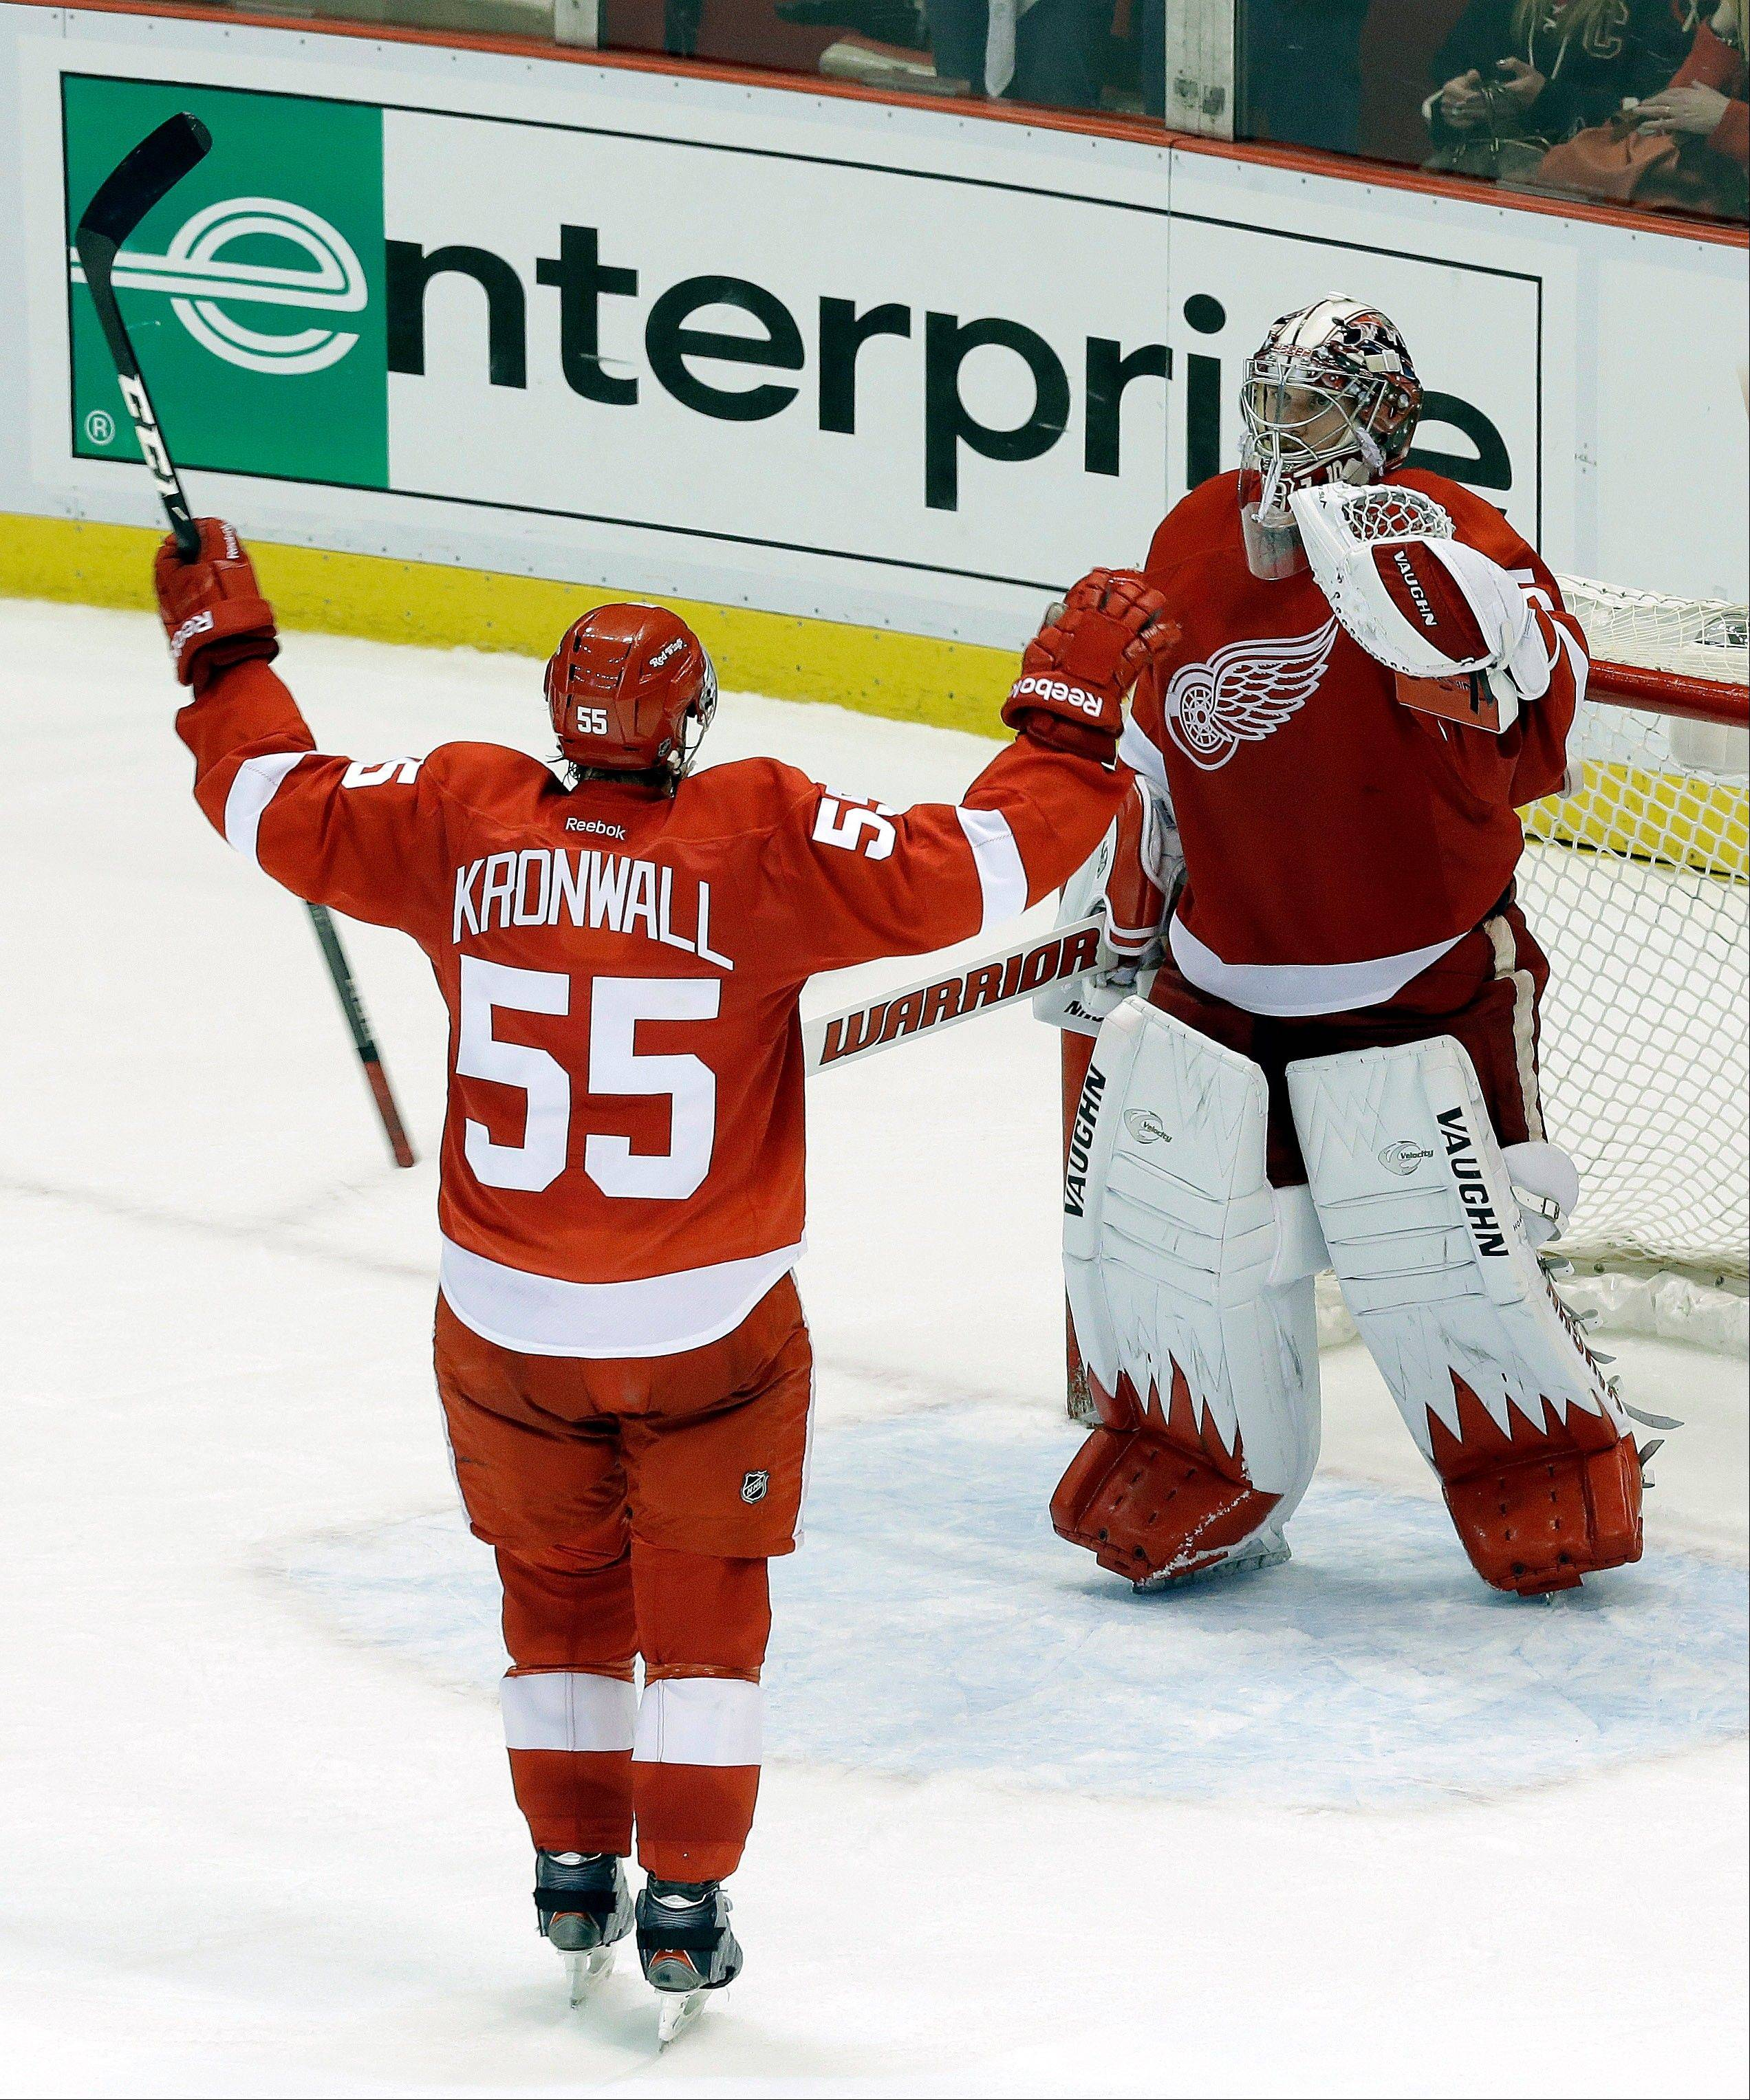 Detroit Red Wings defenseman Niklas Kronwall (55), of Sweden, celebrates with goalie Jimmy Howard (35) after defeating the Chicago Blackhawks 2-0.